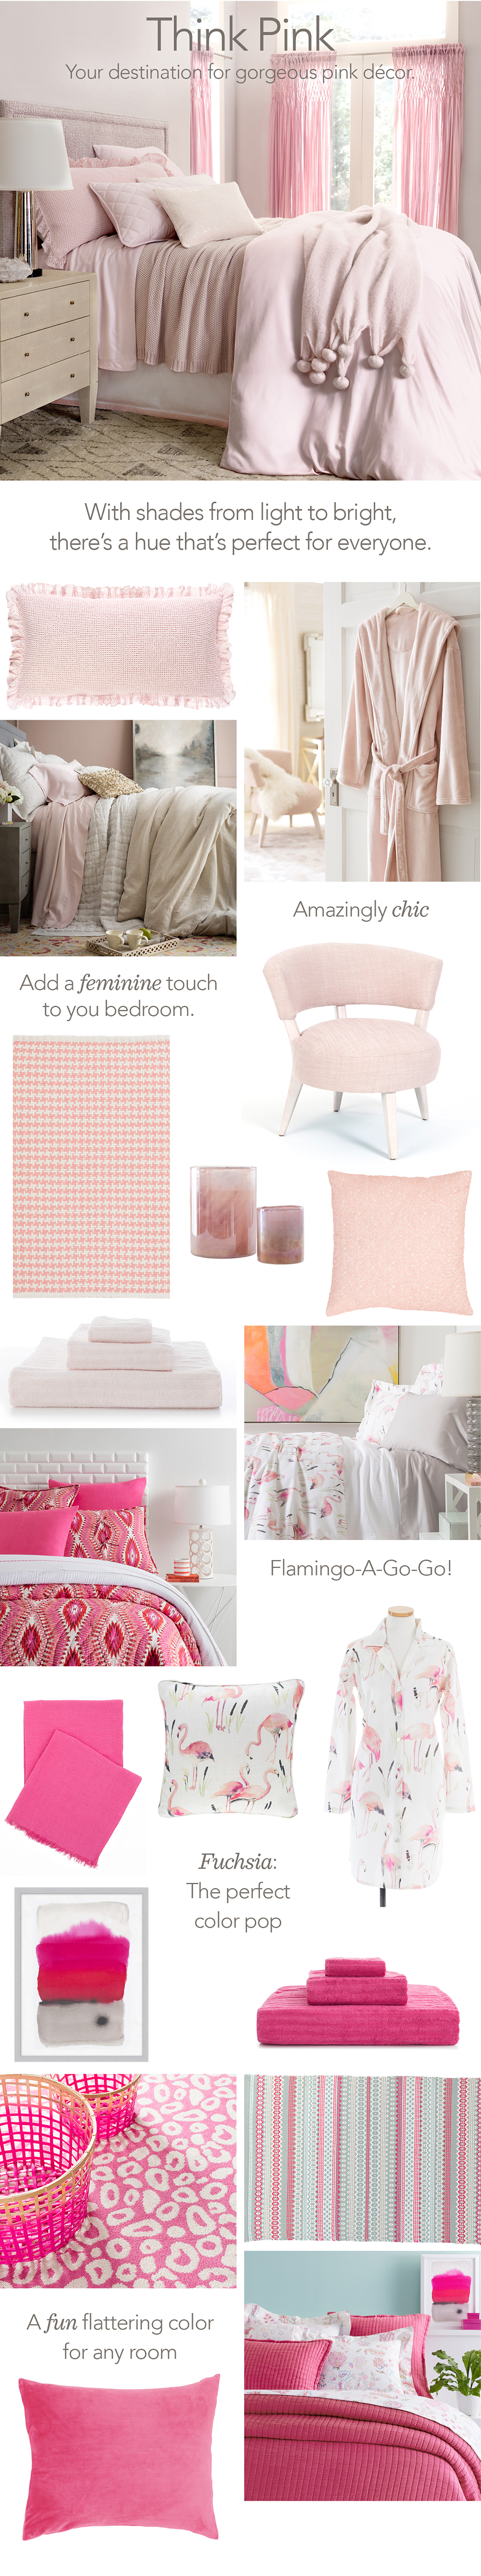 Our Love Affair with Pink | Annie Selke's Fresh American